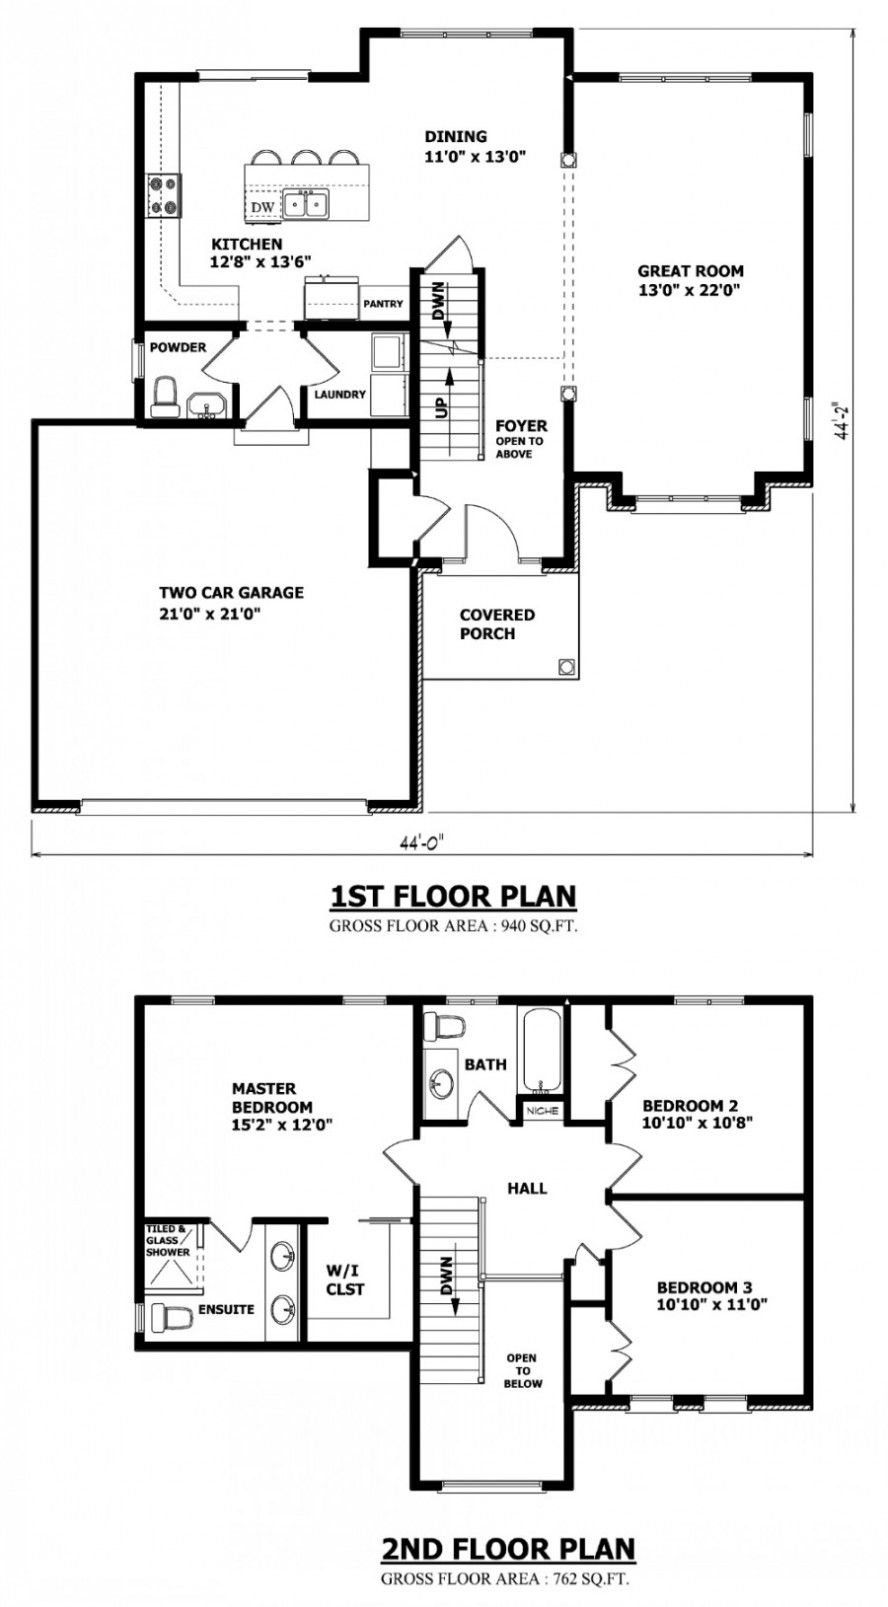 Small Double Storey House Plans Architecture Double Storey House Plans Two Storey House Plans Two Story House Plans